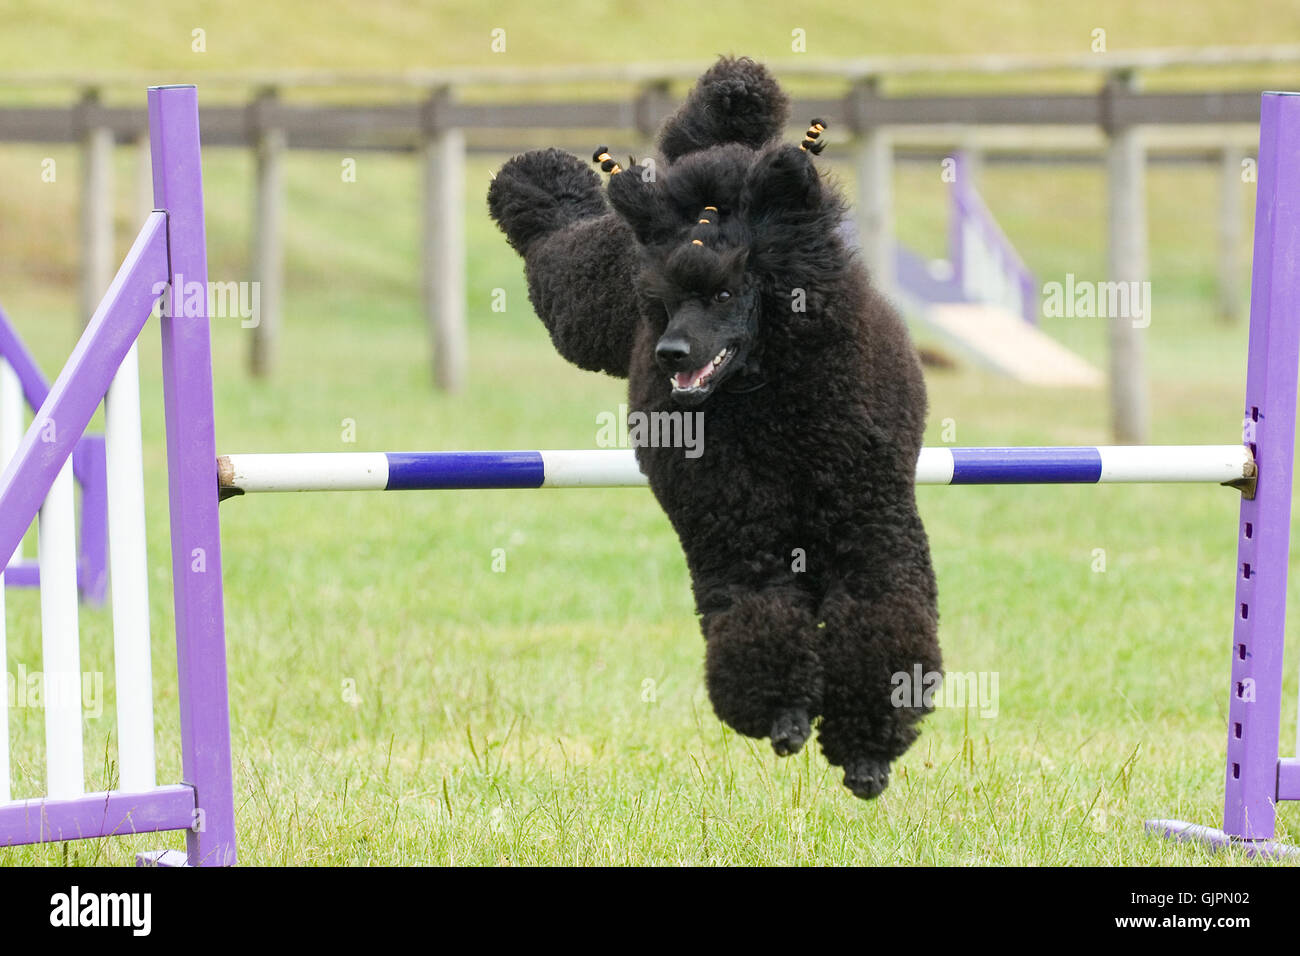 standard poodle doing agility jumps - Stock Image